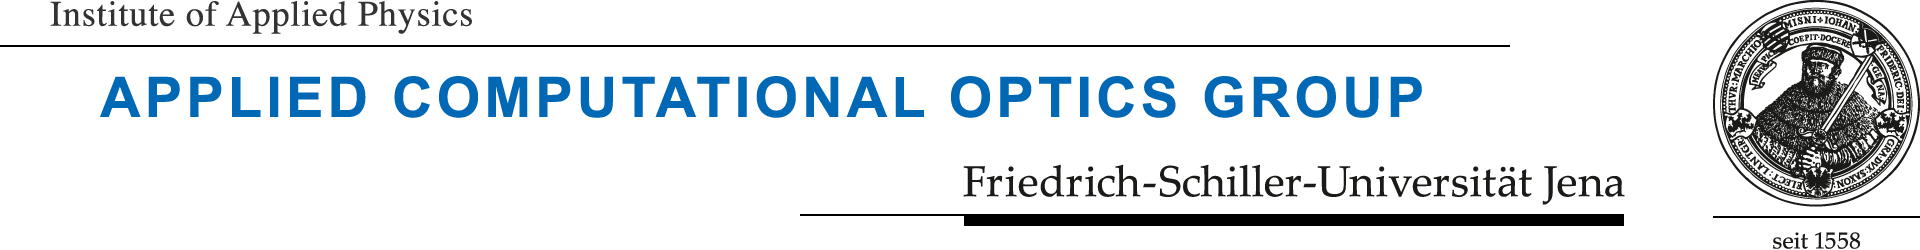 Logo Applied Computational Optics Group